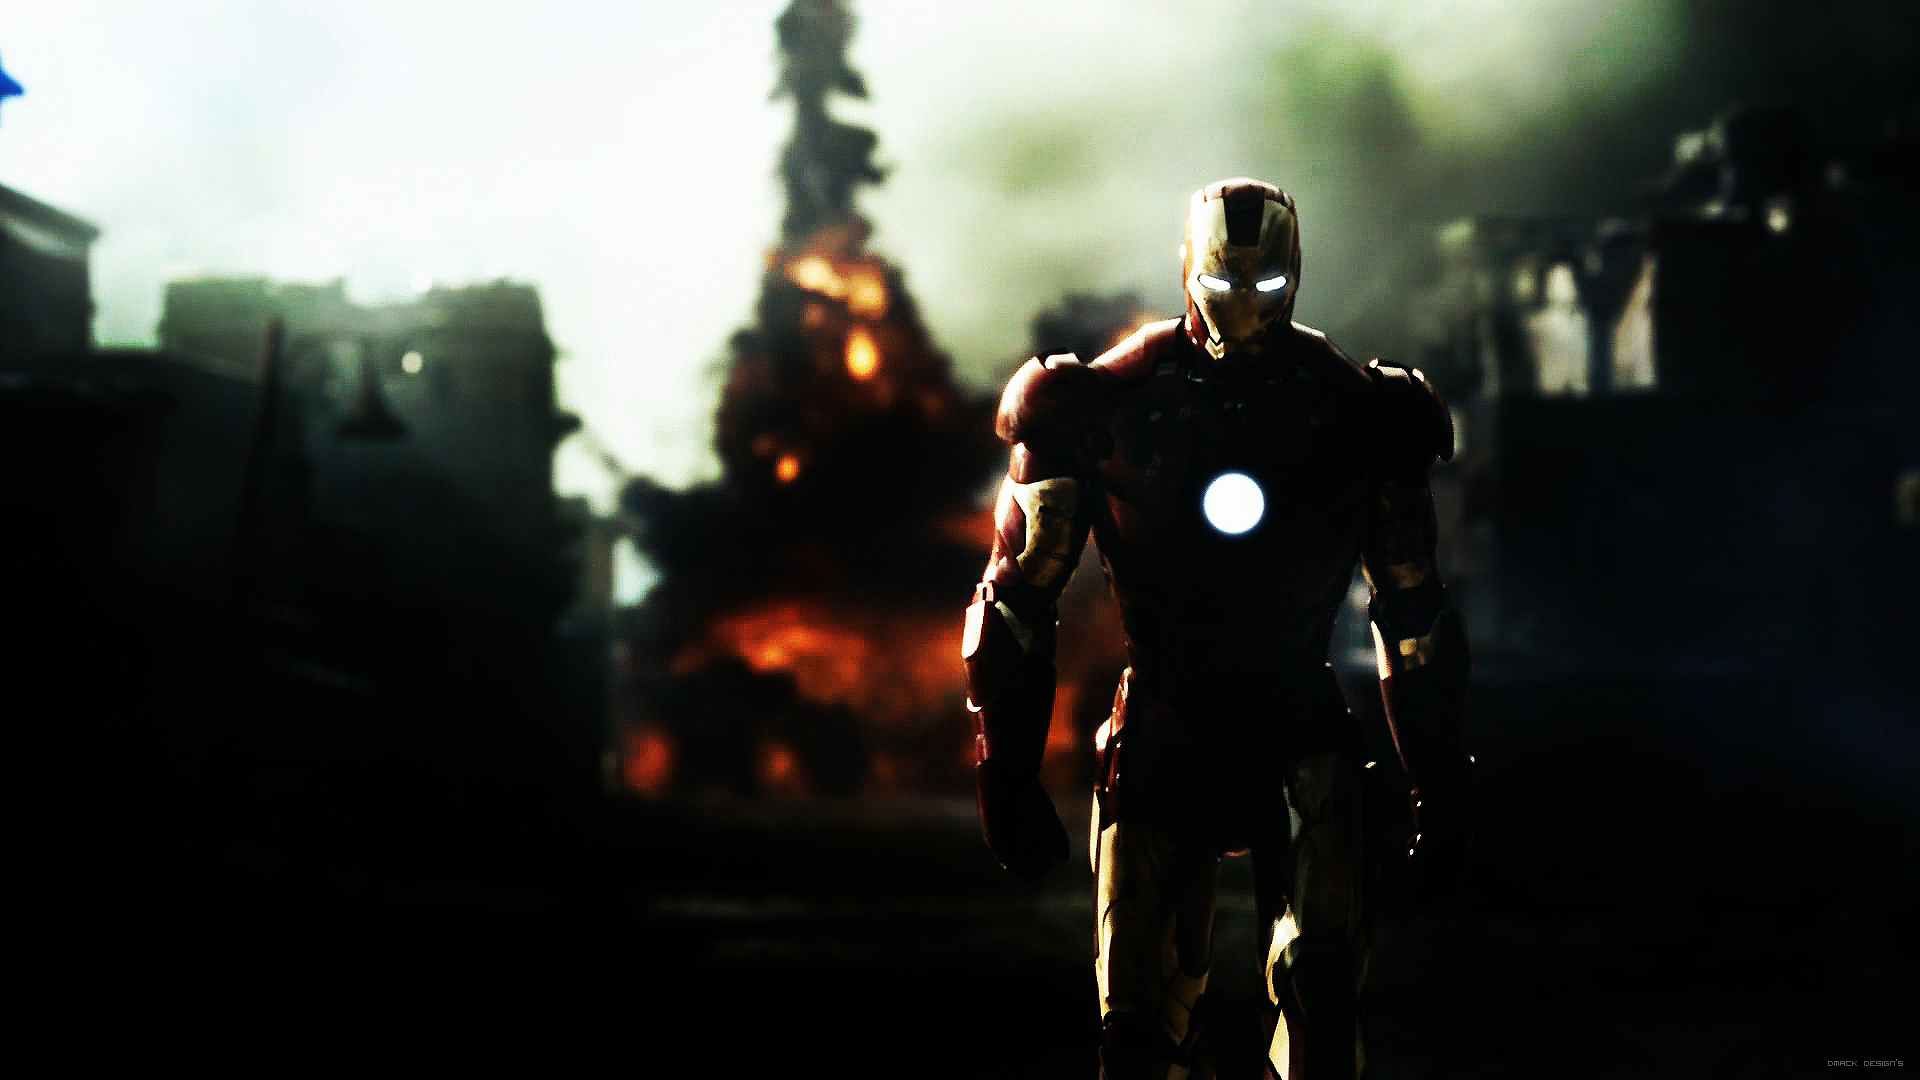 Iron Man HD Wallpaper by DmacKptpng 1920x1080